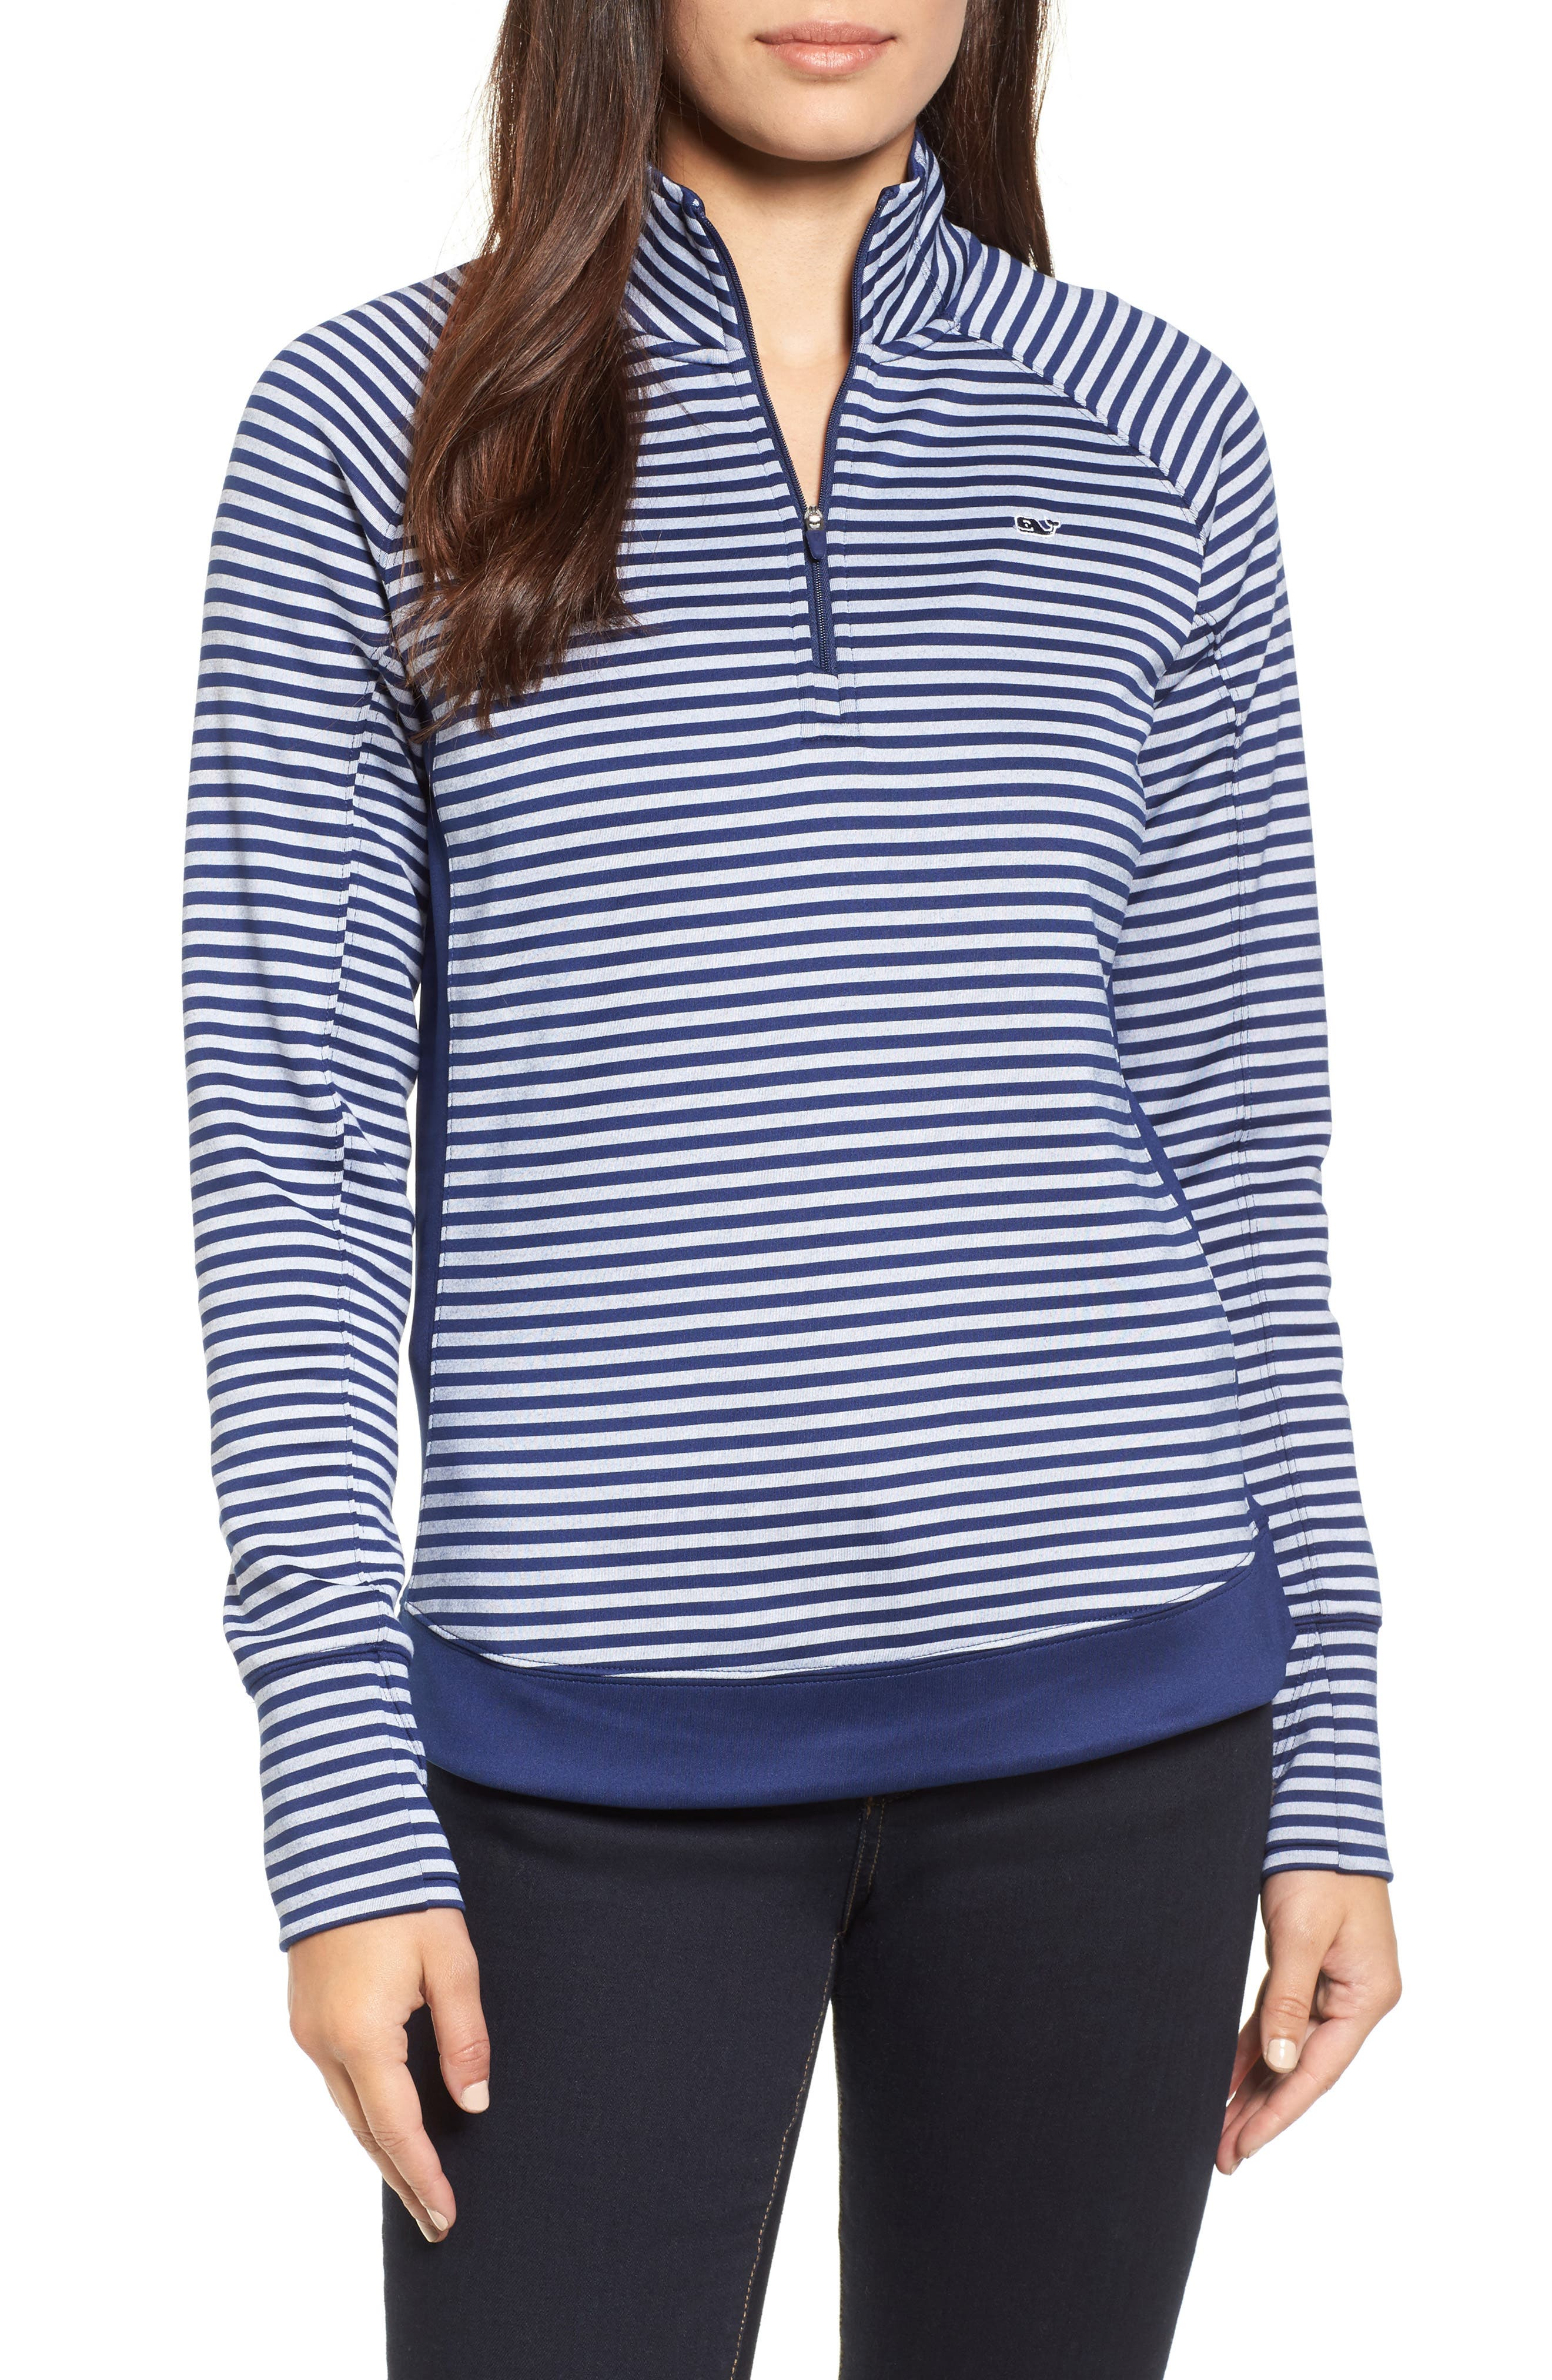 vineyard vines Performance Stripe Quarter Zip Pullover